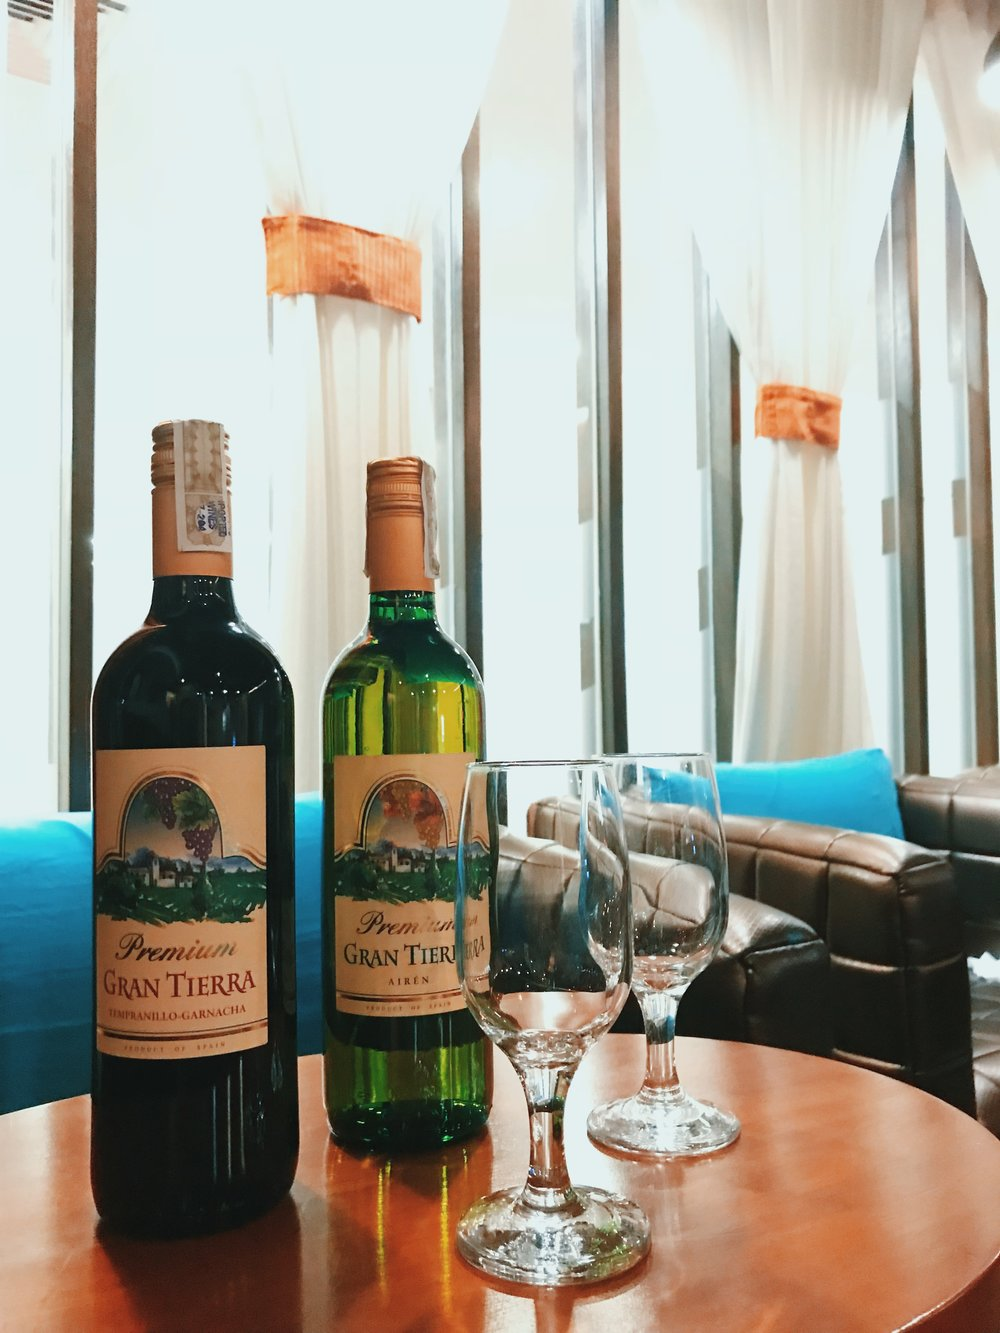 Unlimited wine is available to selected guests